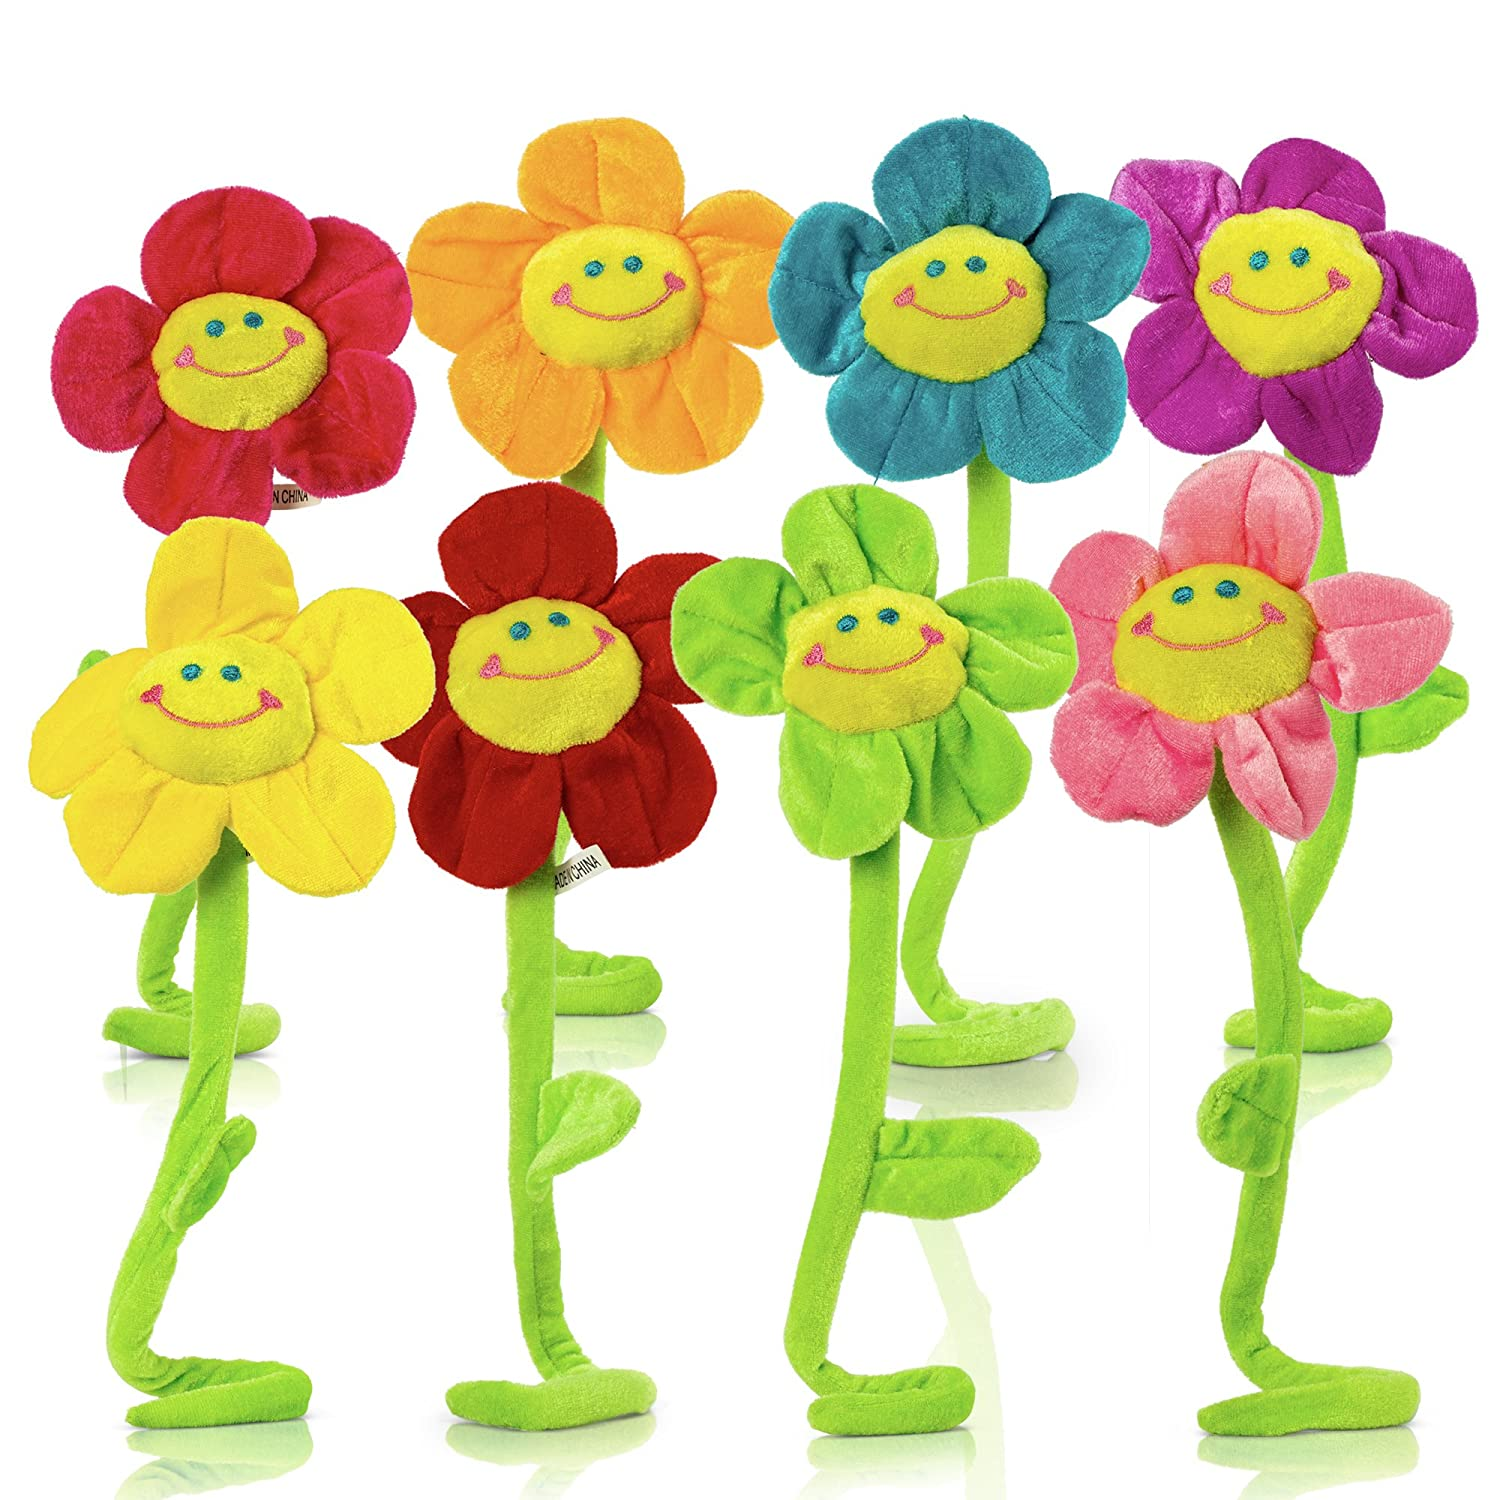 Amazon plush daisy flower with smiley happy faces colorful soft amazon plush daisy flower with smiley happy faces colorful soft bendable stems sunflower toy for kids gift decorations 13 8 piece toys games izmirmasajfo